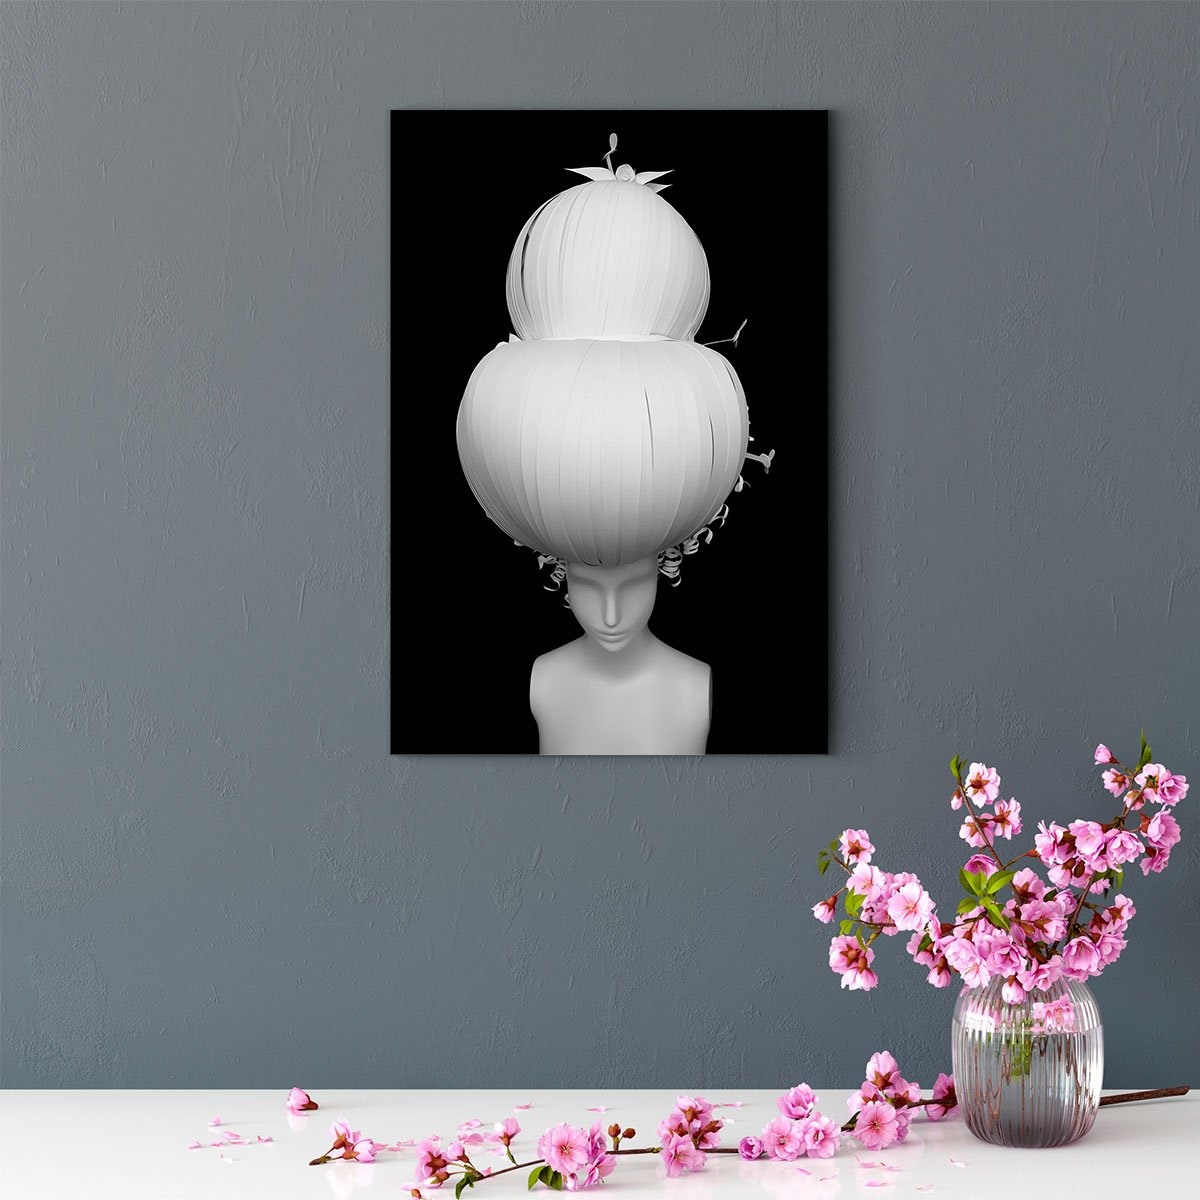 Silent statue character decorative painting 003